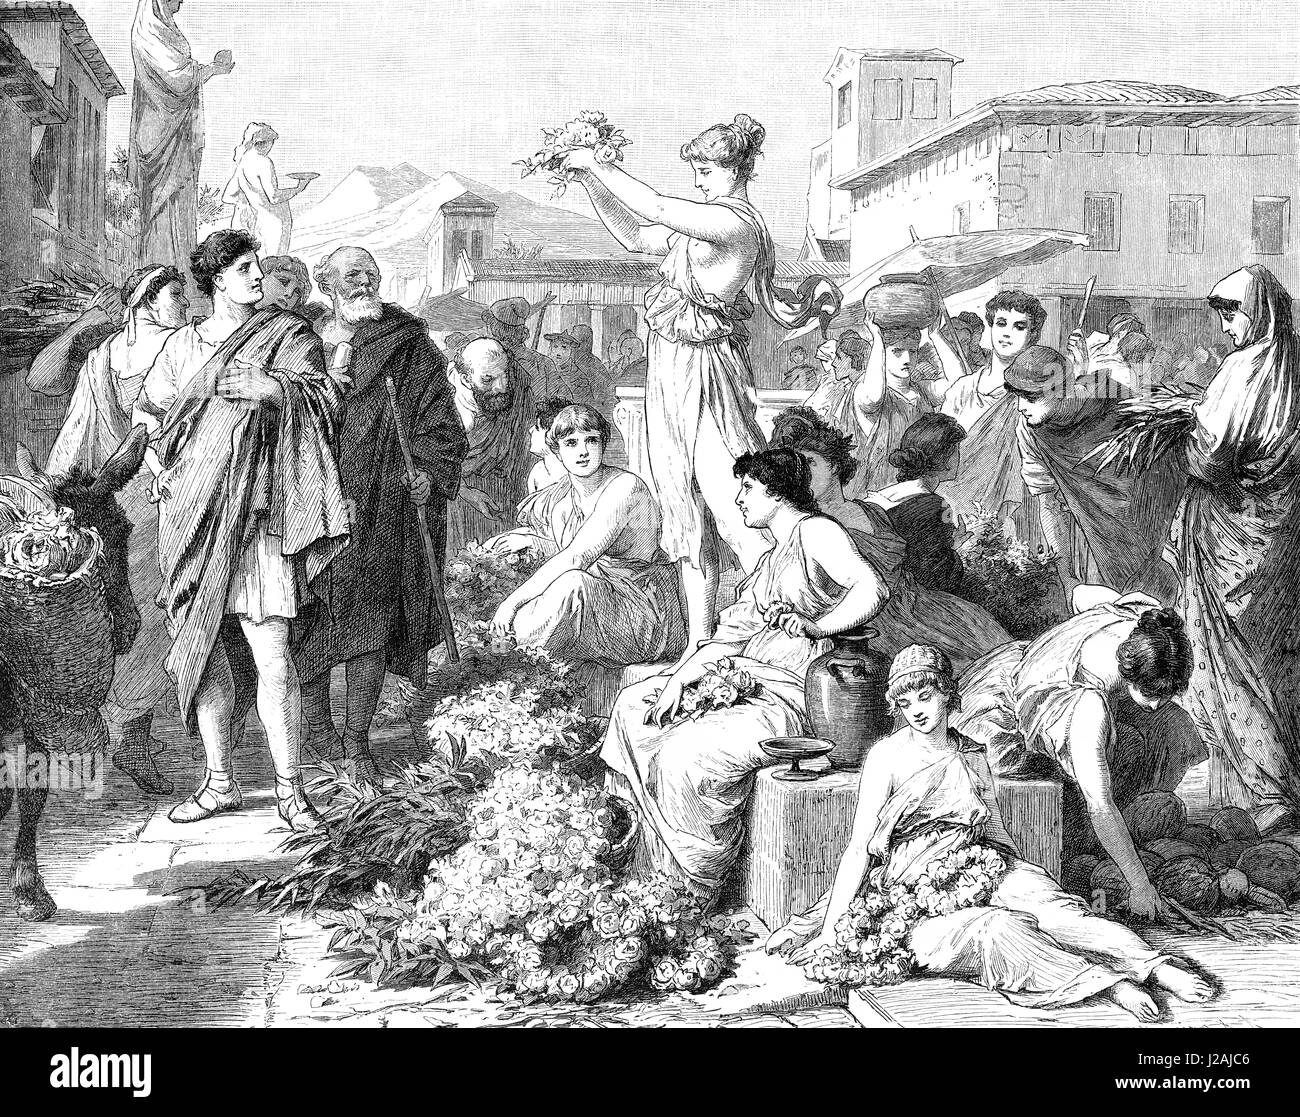 Flower market at Athens in ancient Greece - Stock Image